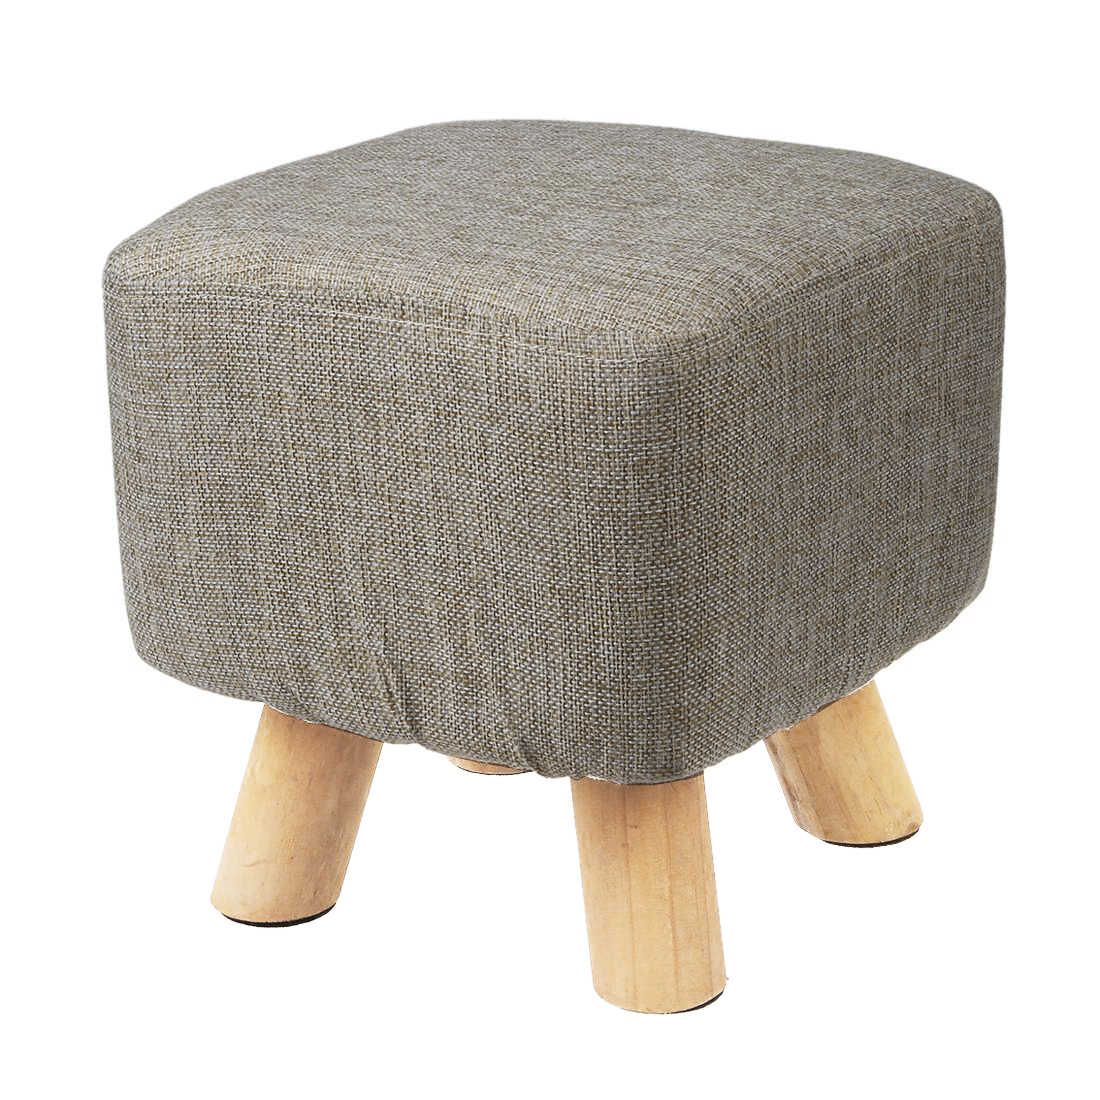 Sensational Promotion Modern Luxury Upholstered Footstool Pouffe Stool Wooden Leg Pattern Square Fabric Grey 4 Legs Pdpeps Interior Chair Design Pdpepsorg